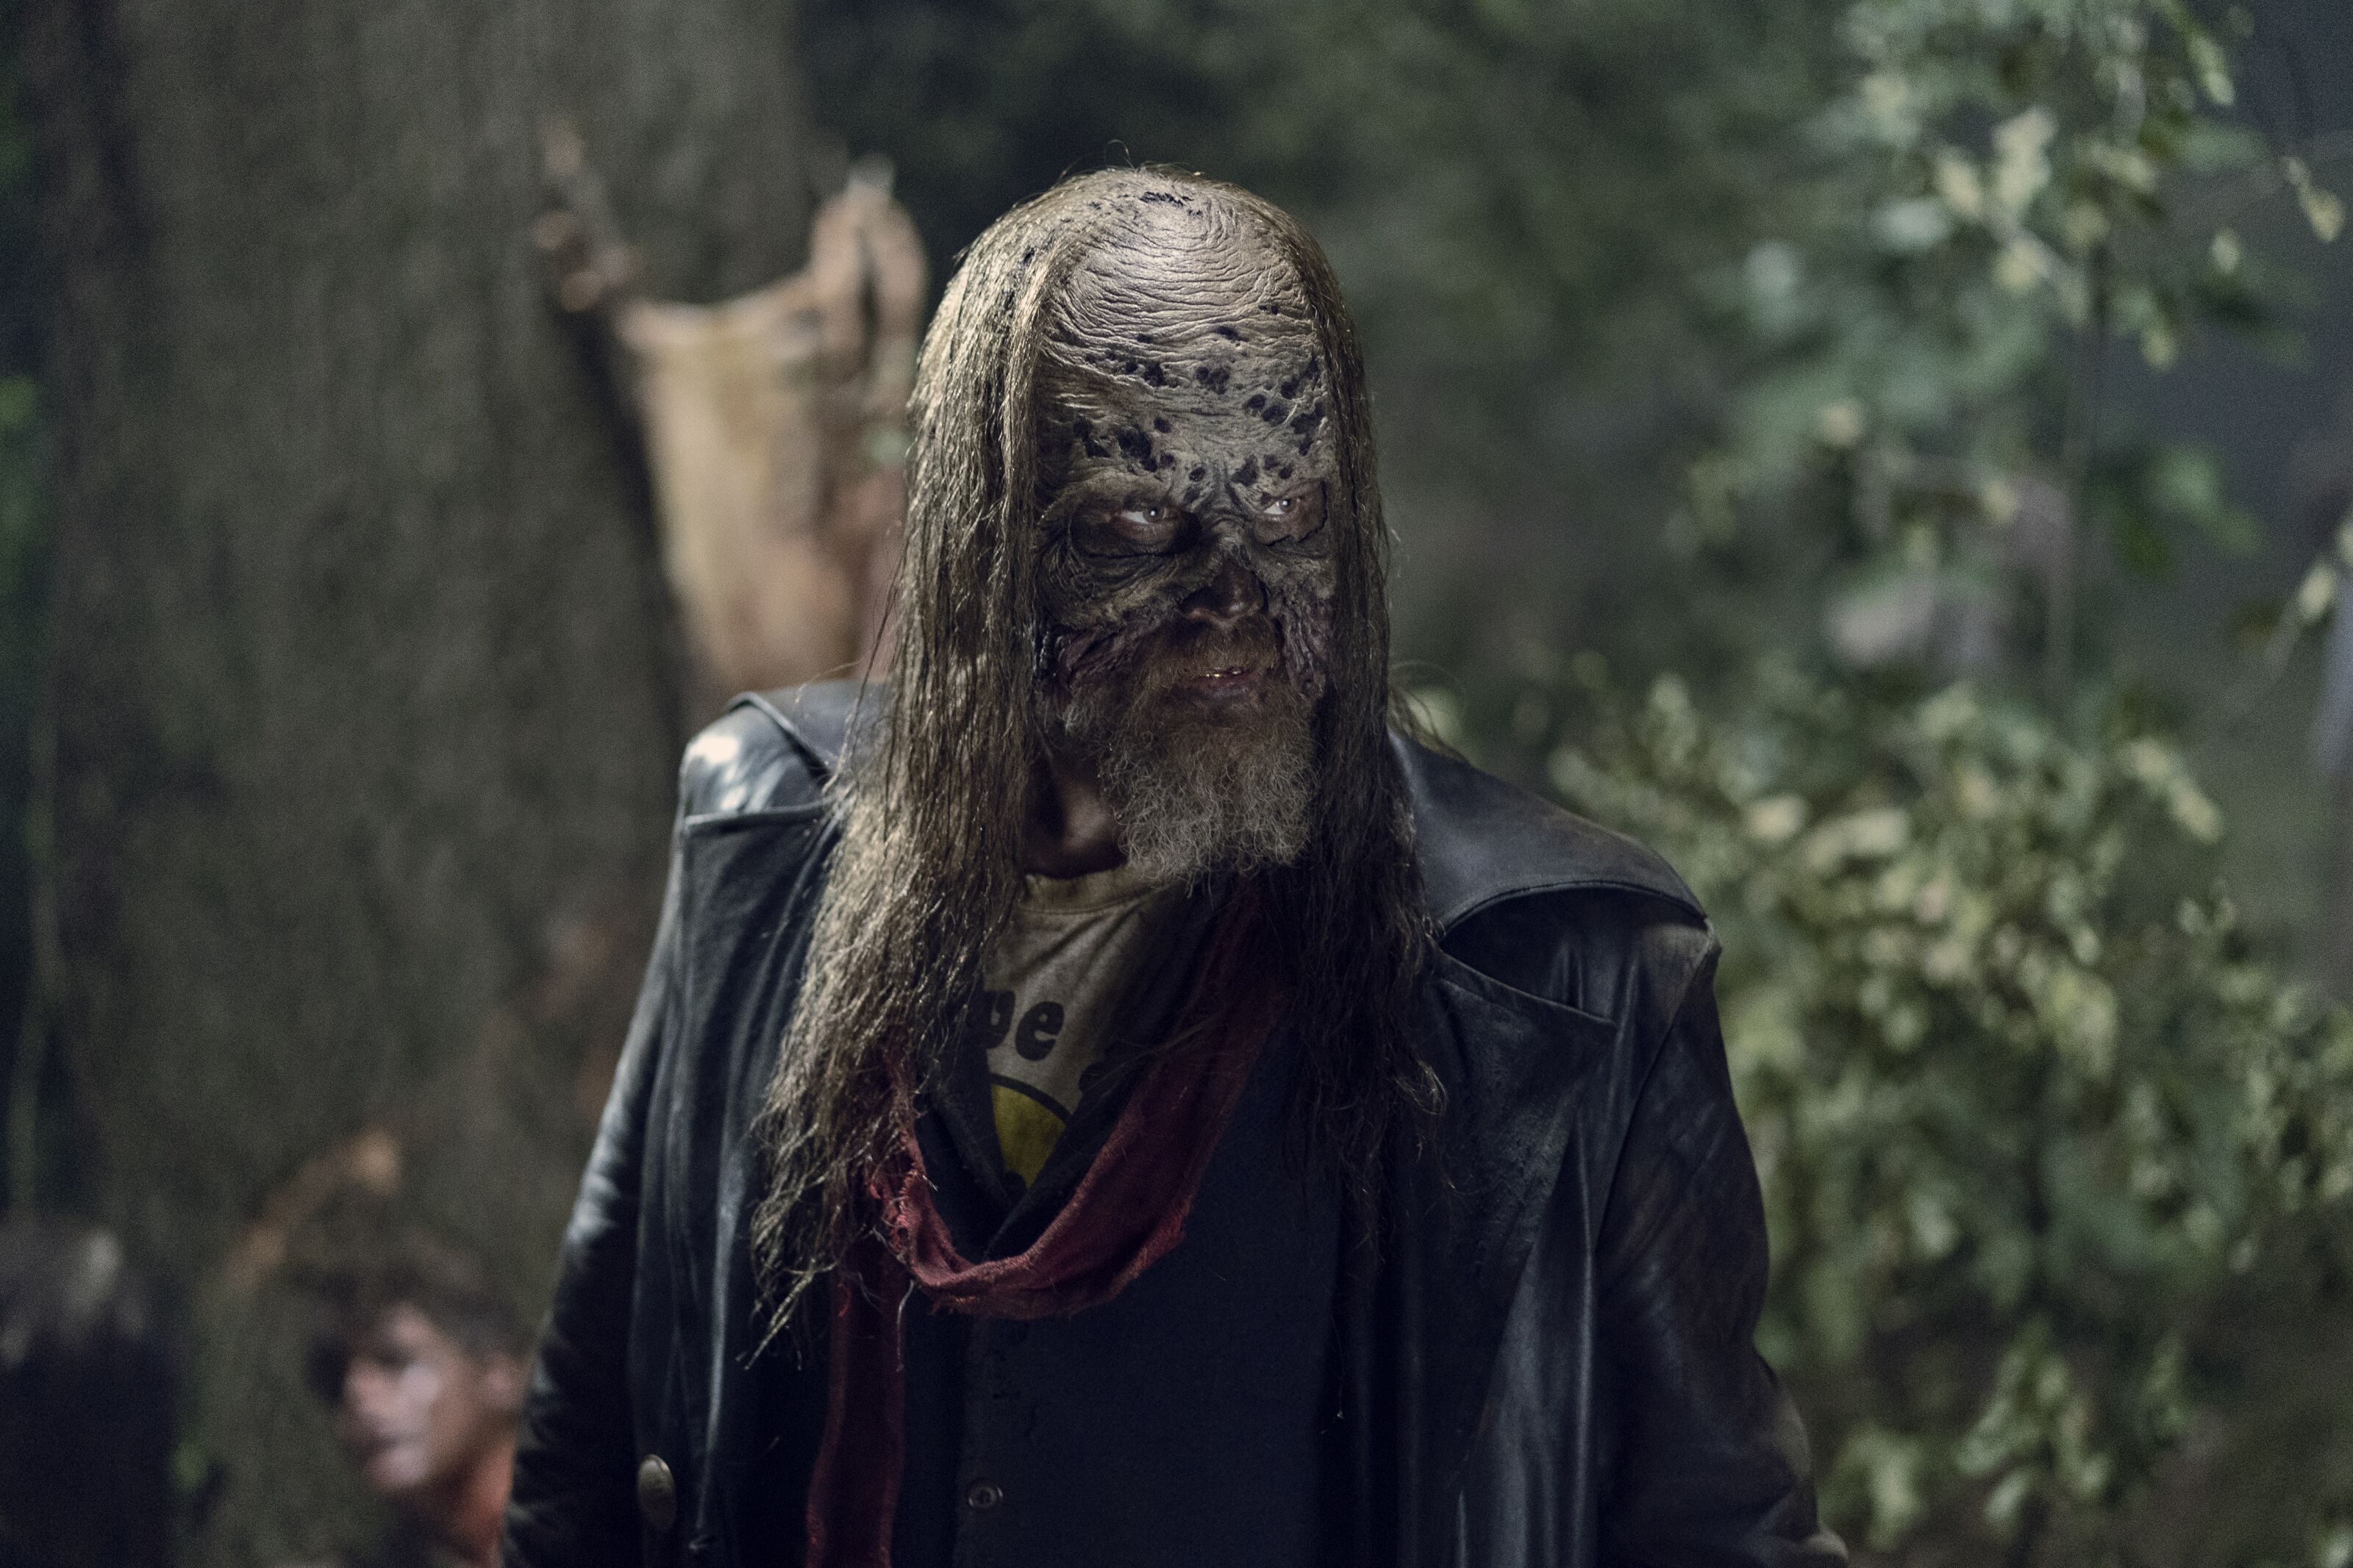 The Walking Dead's Ryan Hurst (Beta) was hospitalized while filming season 10